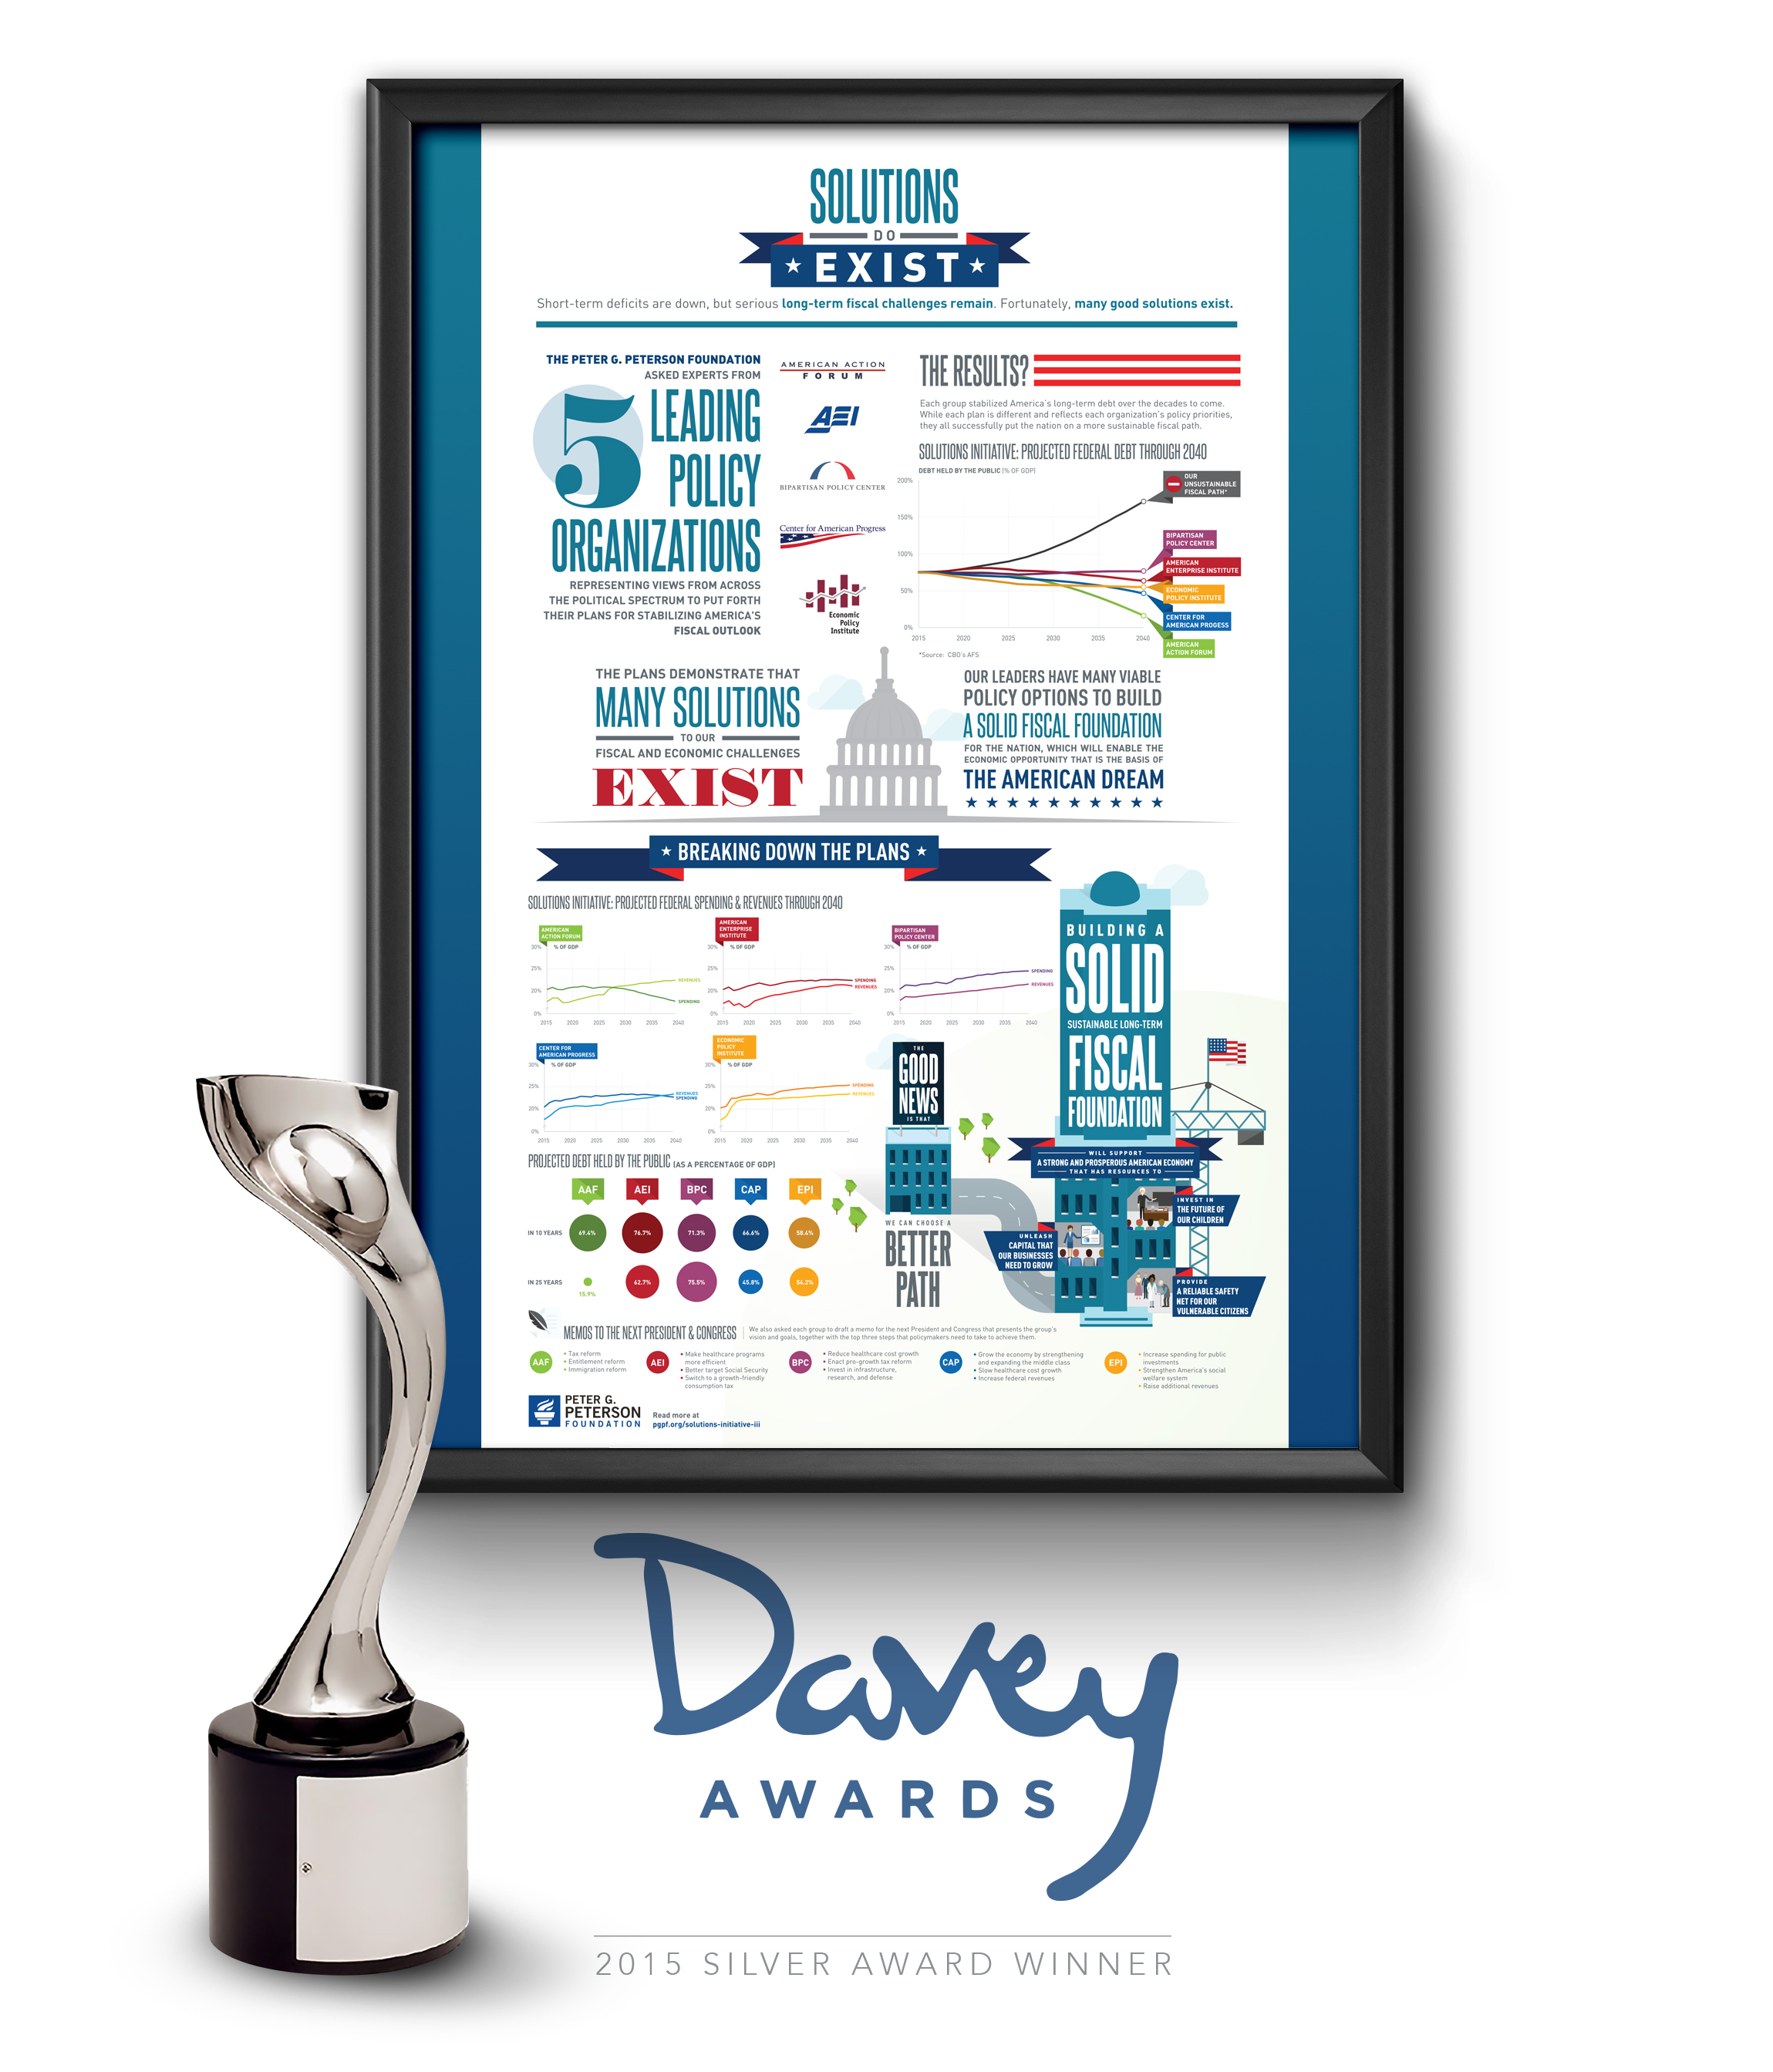 PGPF_Solutions_Poster_Davey_Awards_2015